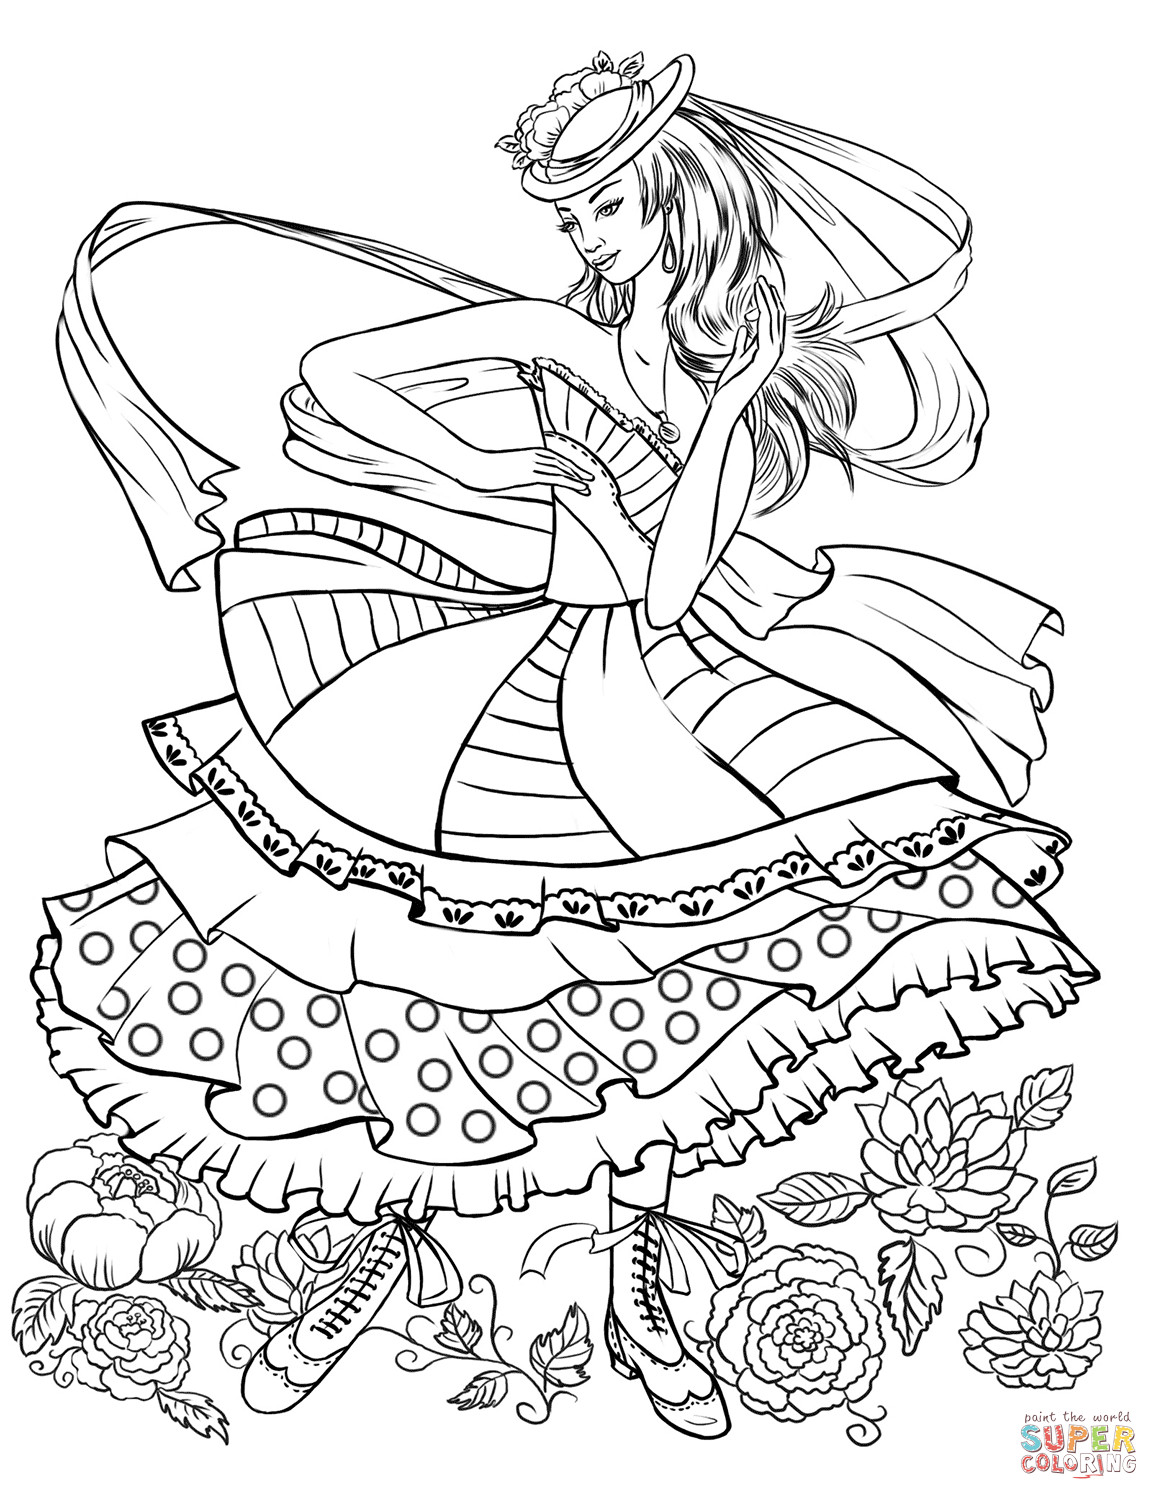 Best ideas about Fashion Coloring Pages For Girls Printable . Save or Pin Girl Dancing in a Vintage Fashion Clothing coloring page Now.